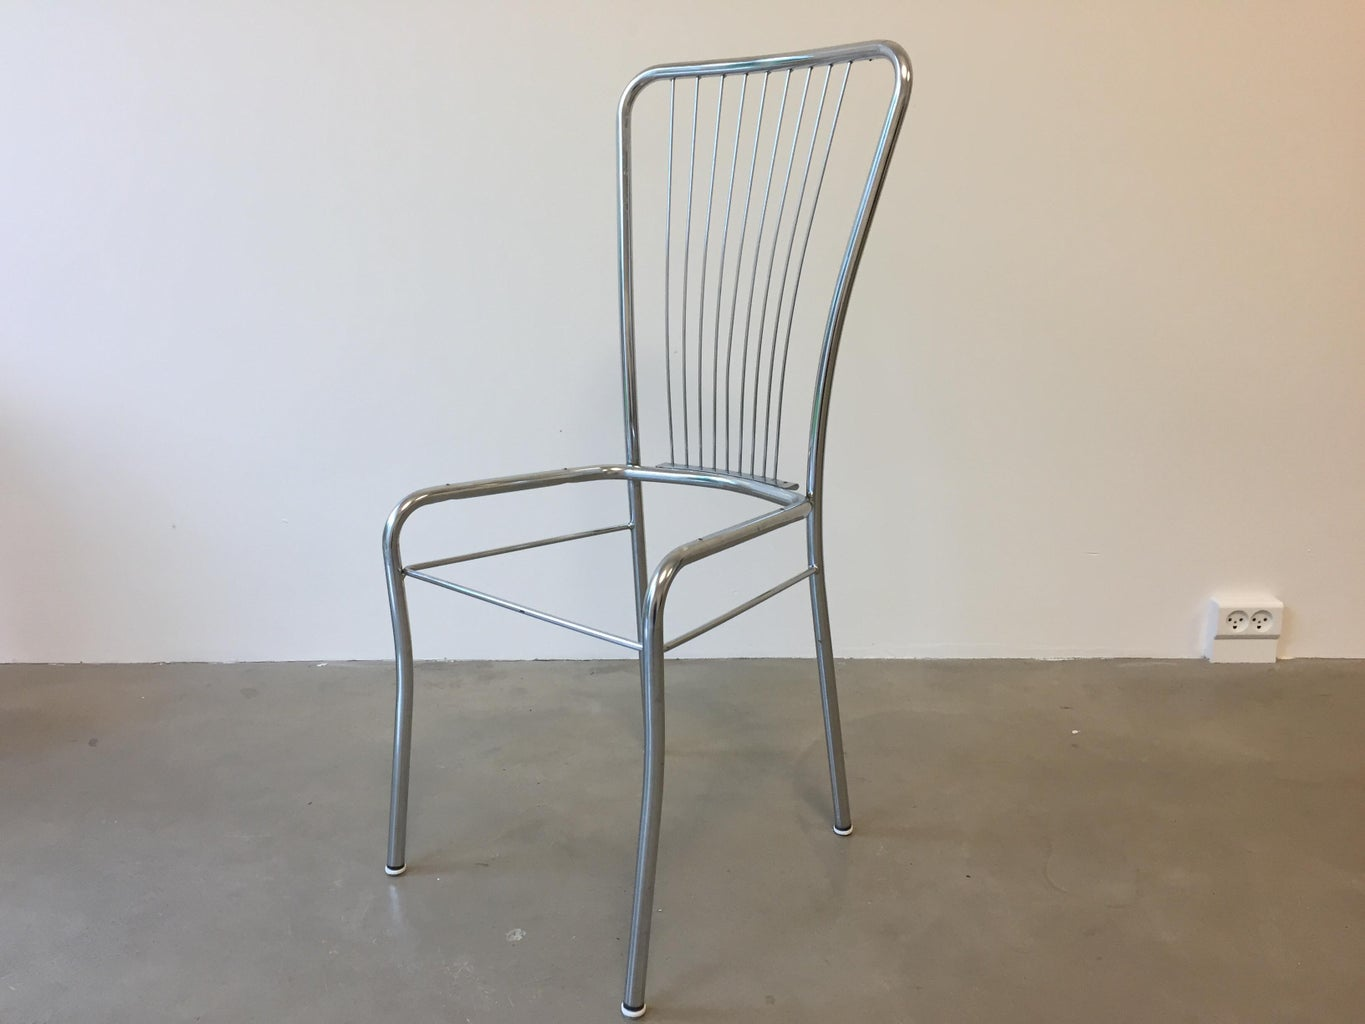 Find an Old Chair Thats Missing Something